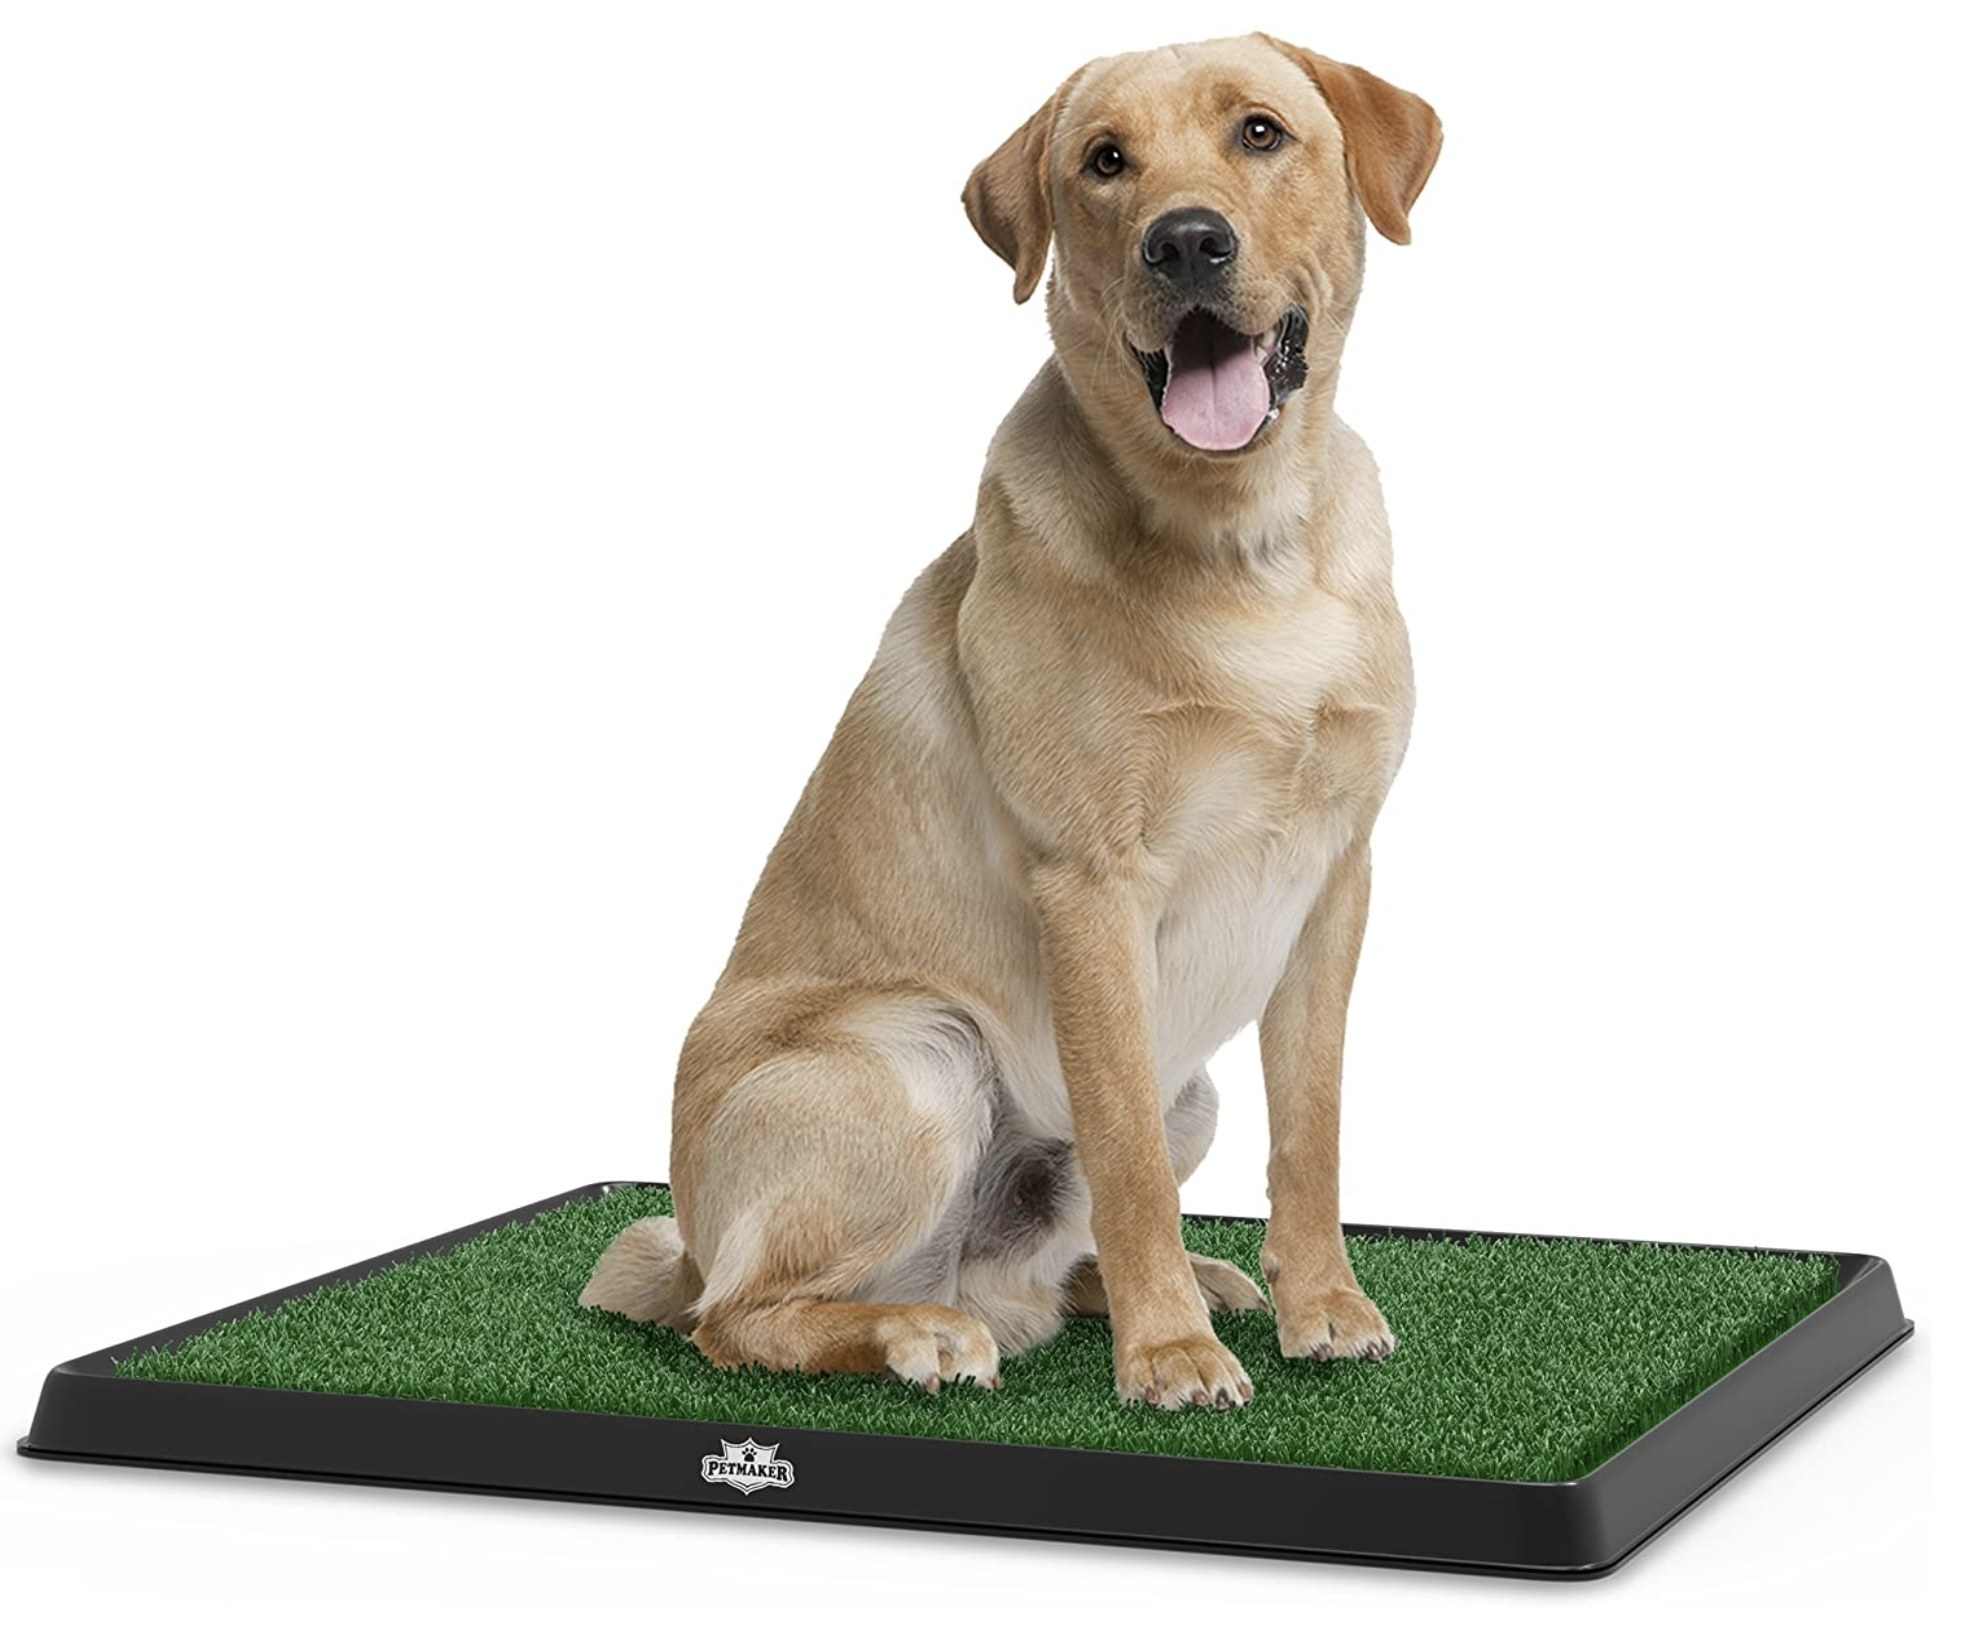 A dog posing on the mat